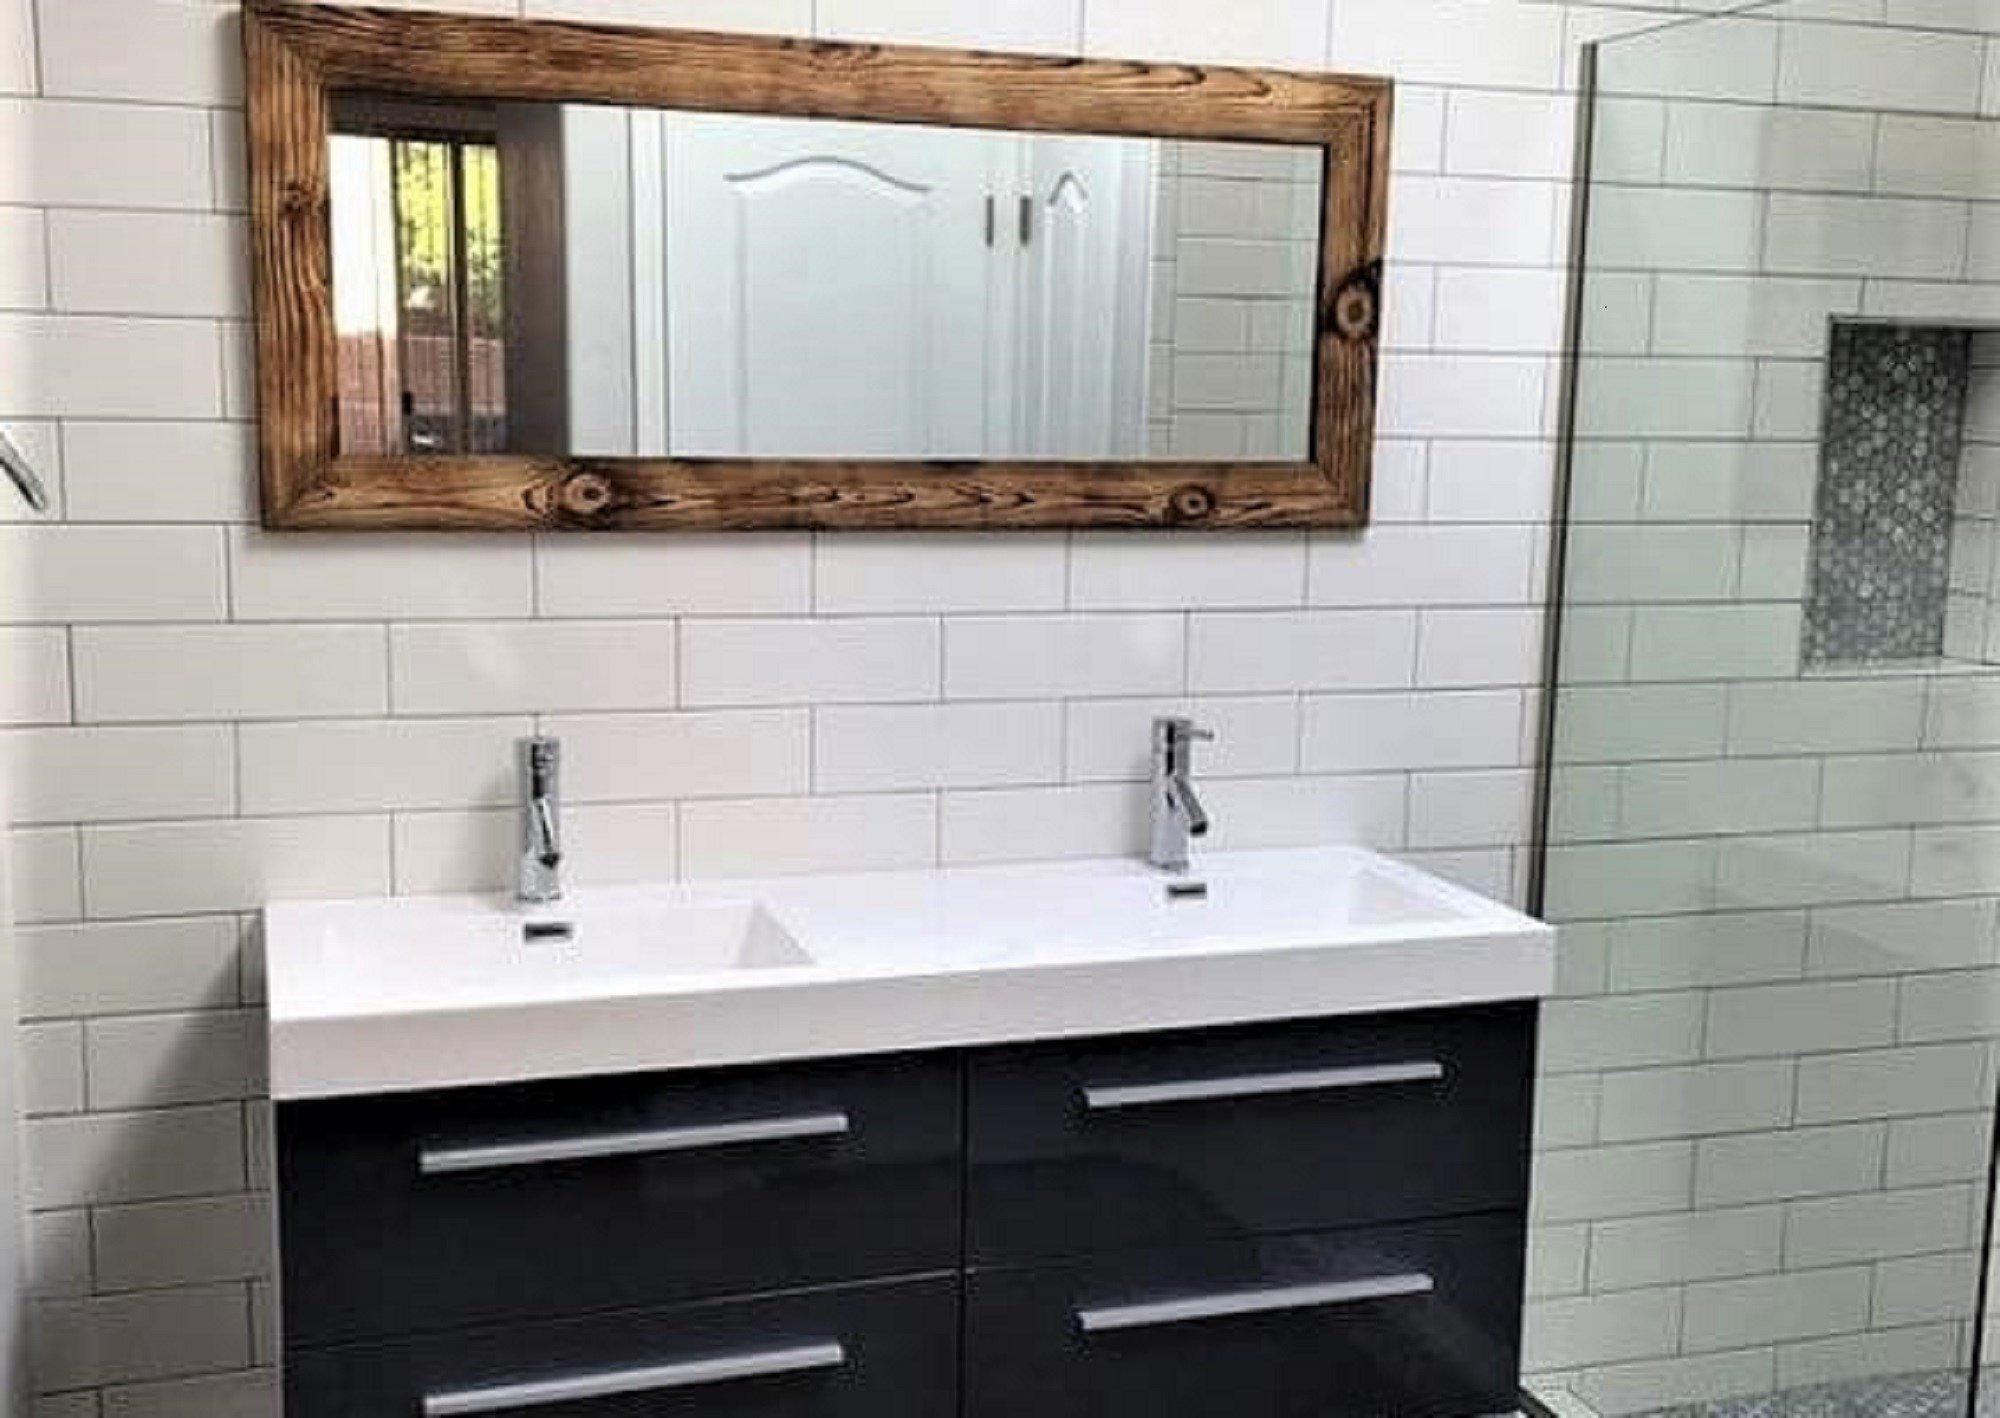 Widely Used Bathroom Full Wall Mirrors With Regard To Bathroom Mirror, Vanity Mirror, Bathroom Vanity Mirror, Full Length Mirror,  Floor Mirror Wall Mirror (View 16 of 20)